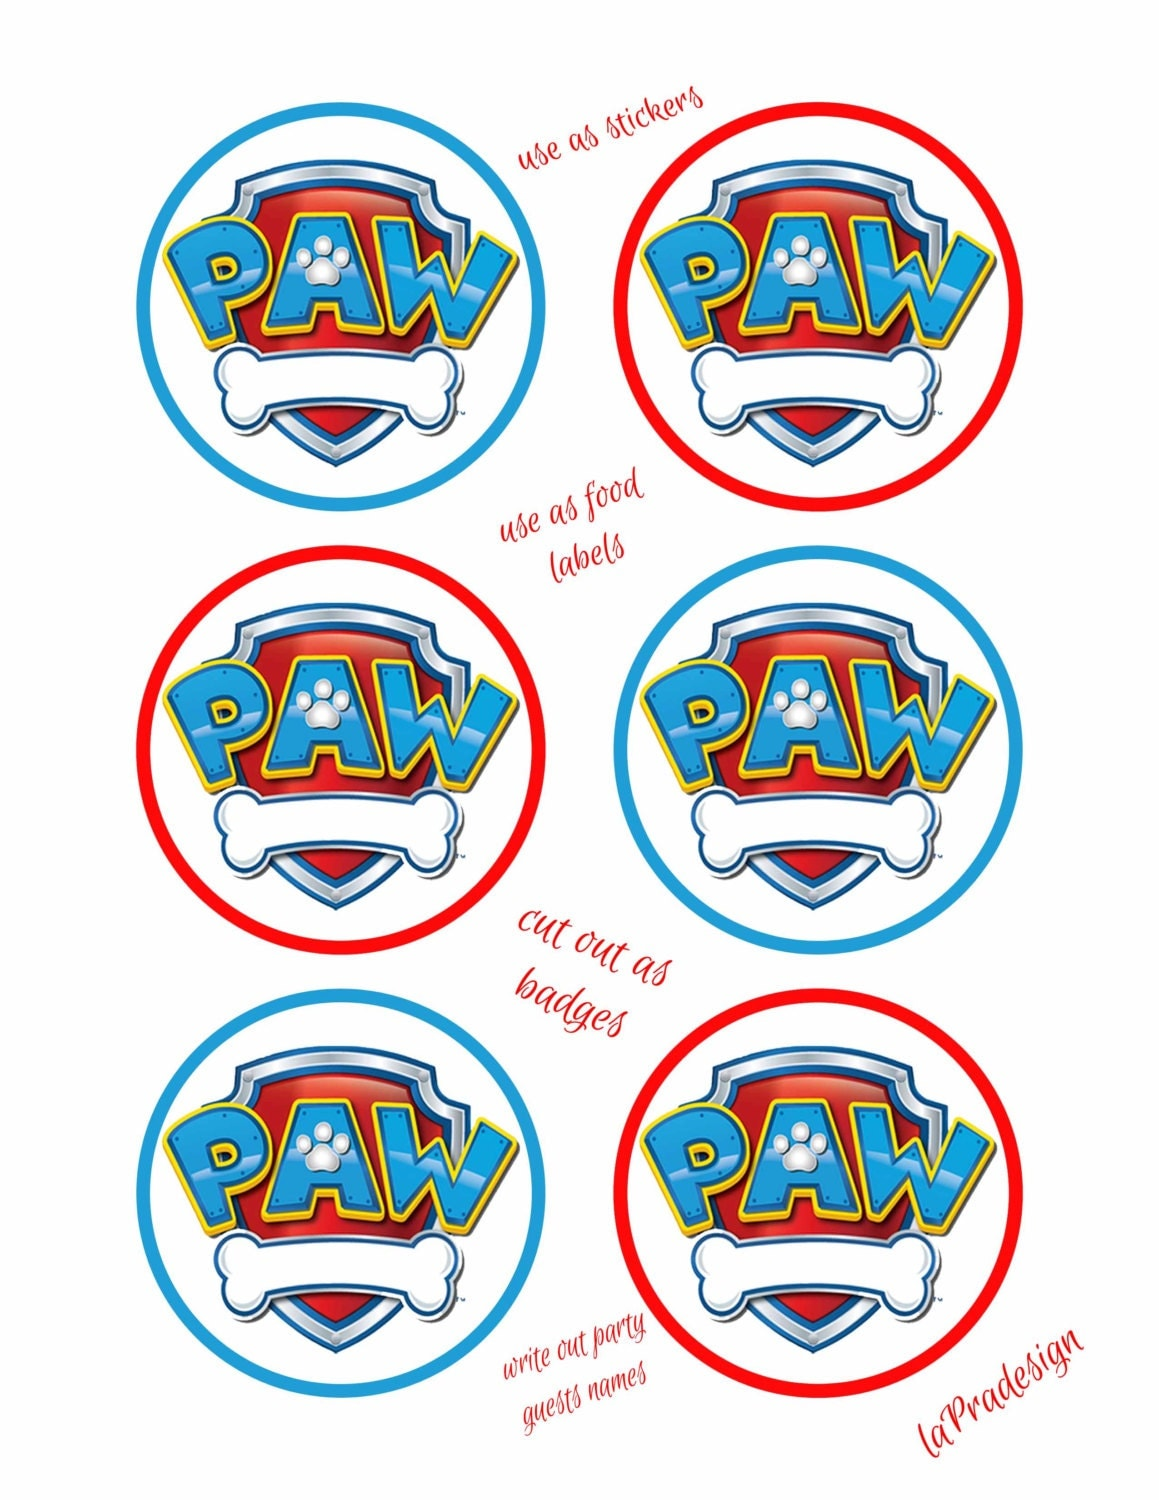 Sly image with free printable paw patrol badges